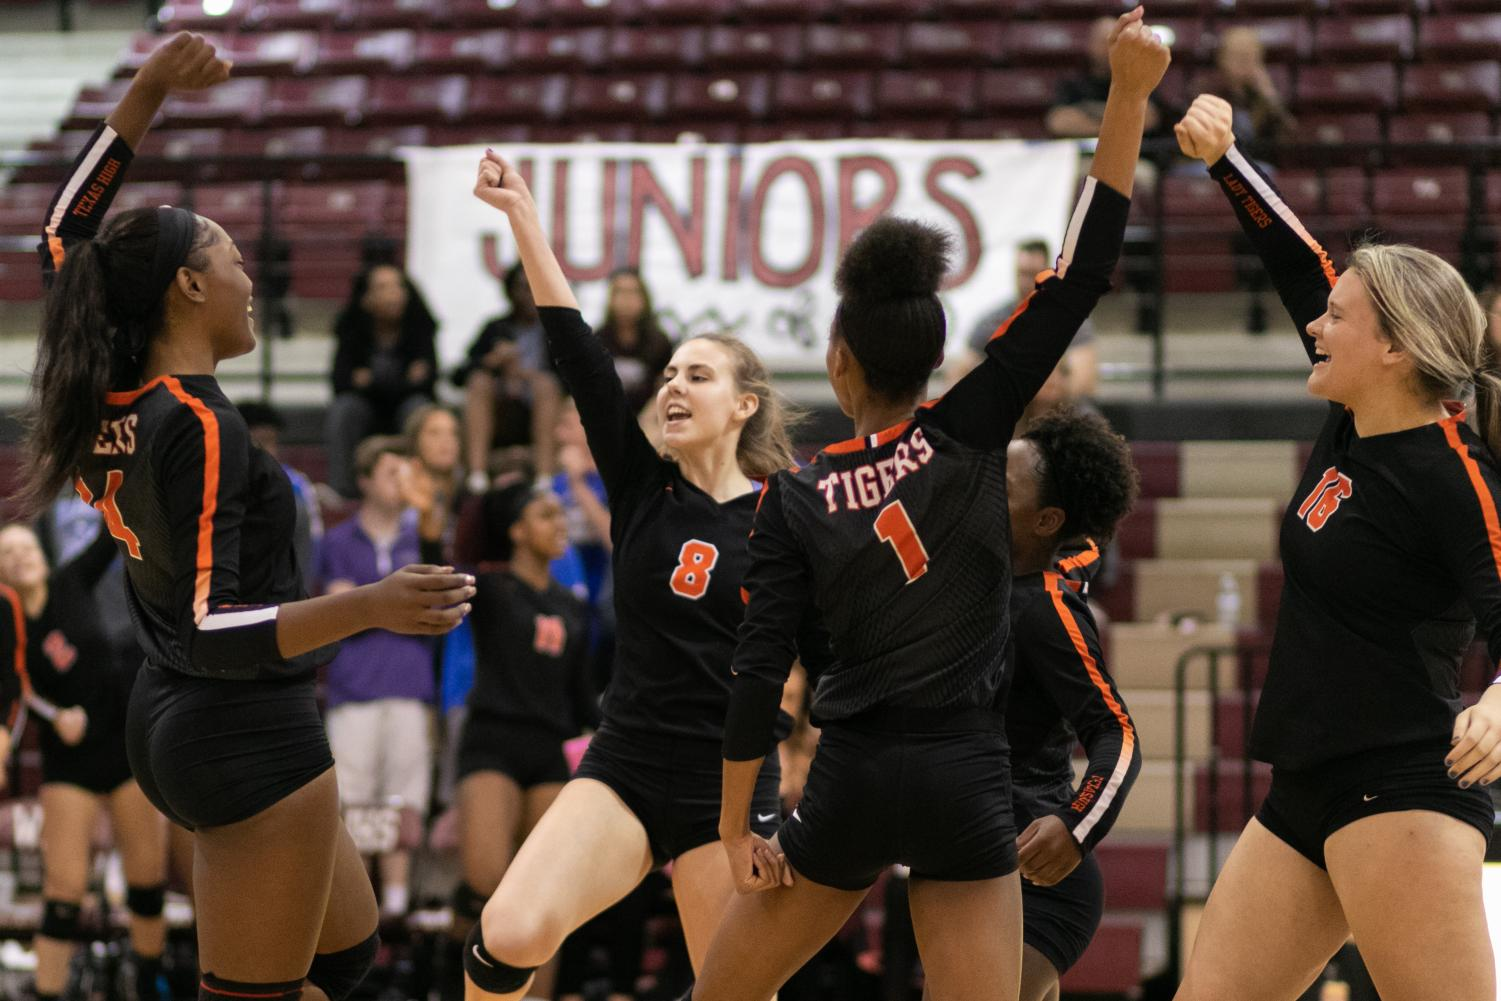 The Lady Tigers celebrate after scoring a point against the Joshua Lady Owls in the regional quarterfinal. They play the Wakeland Wolverines on Friday at Richardson Berkner High School at 5 p.m.